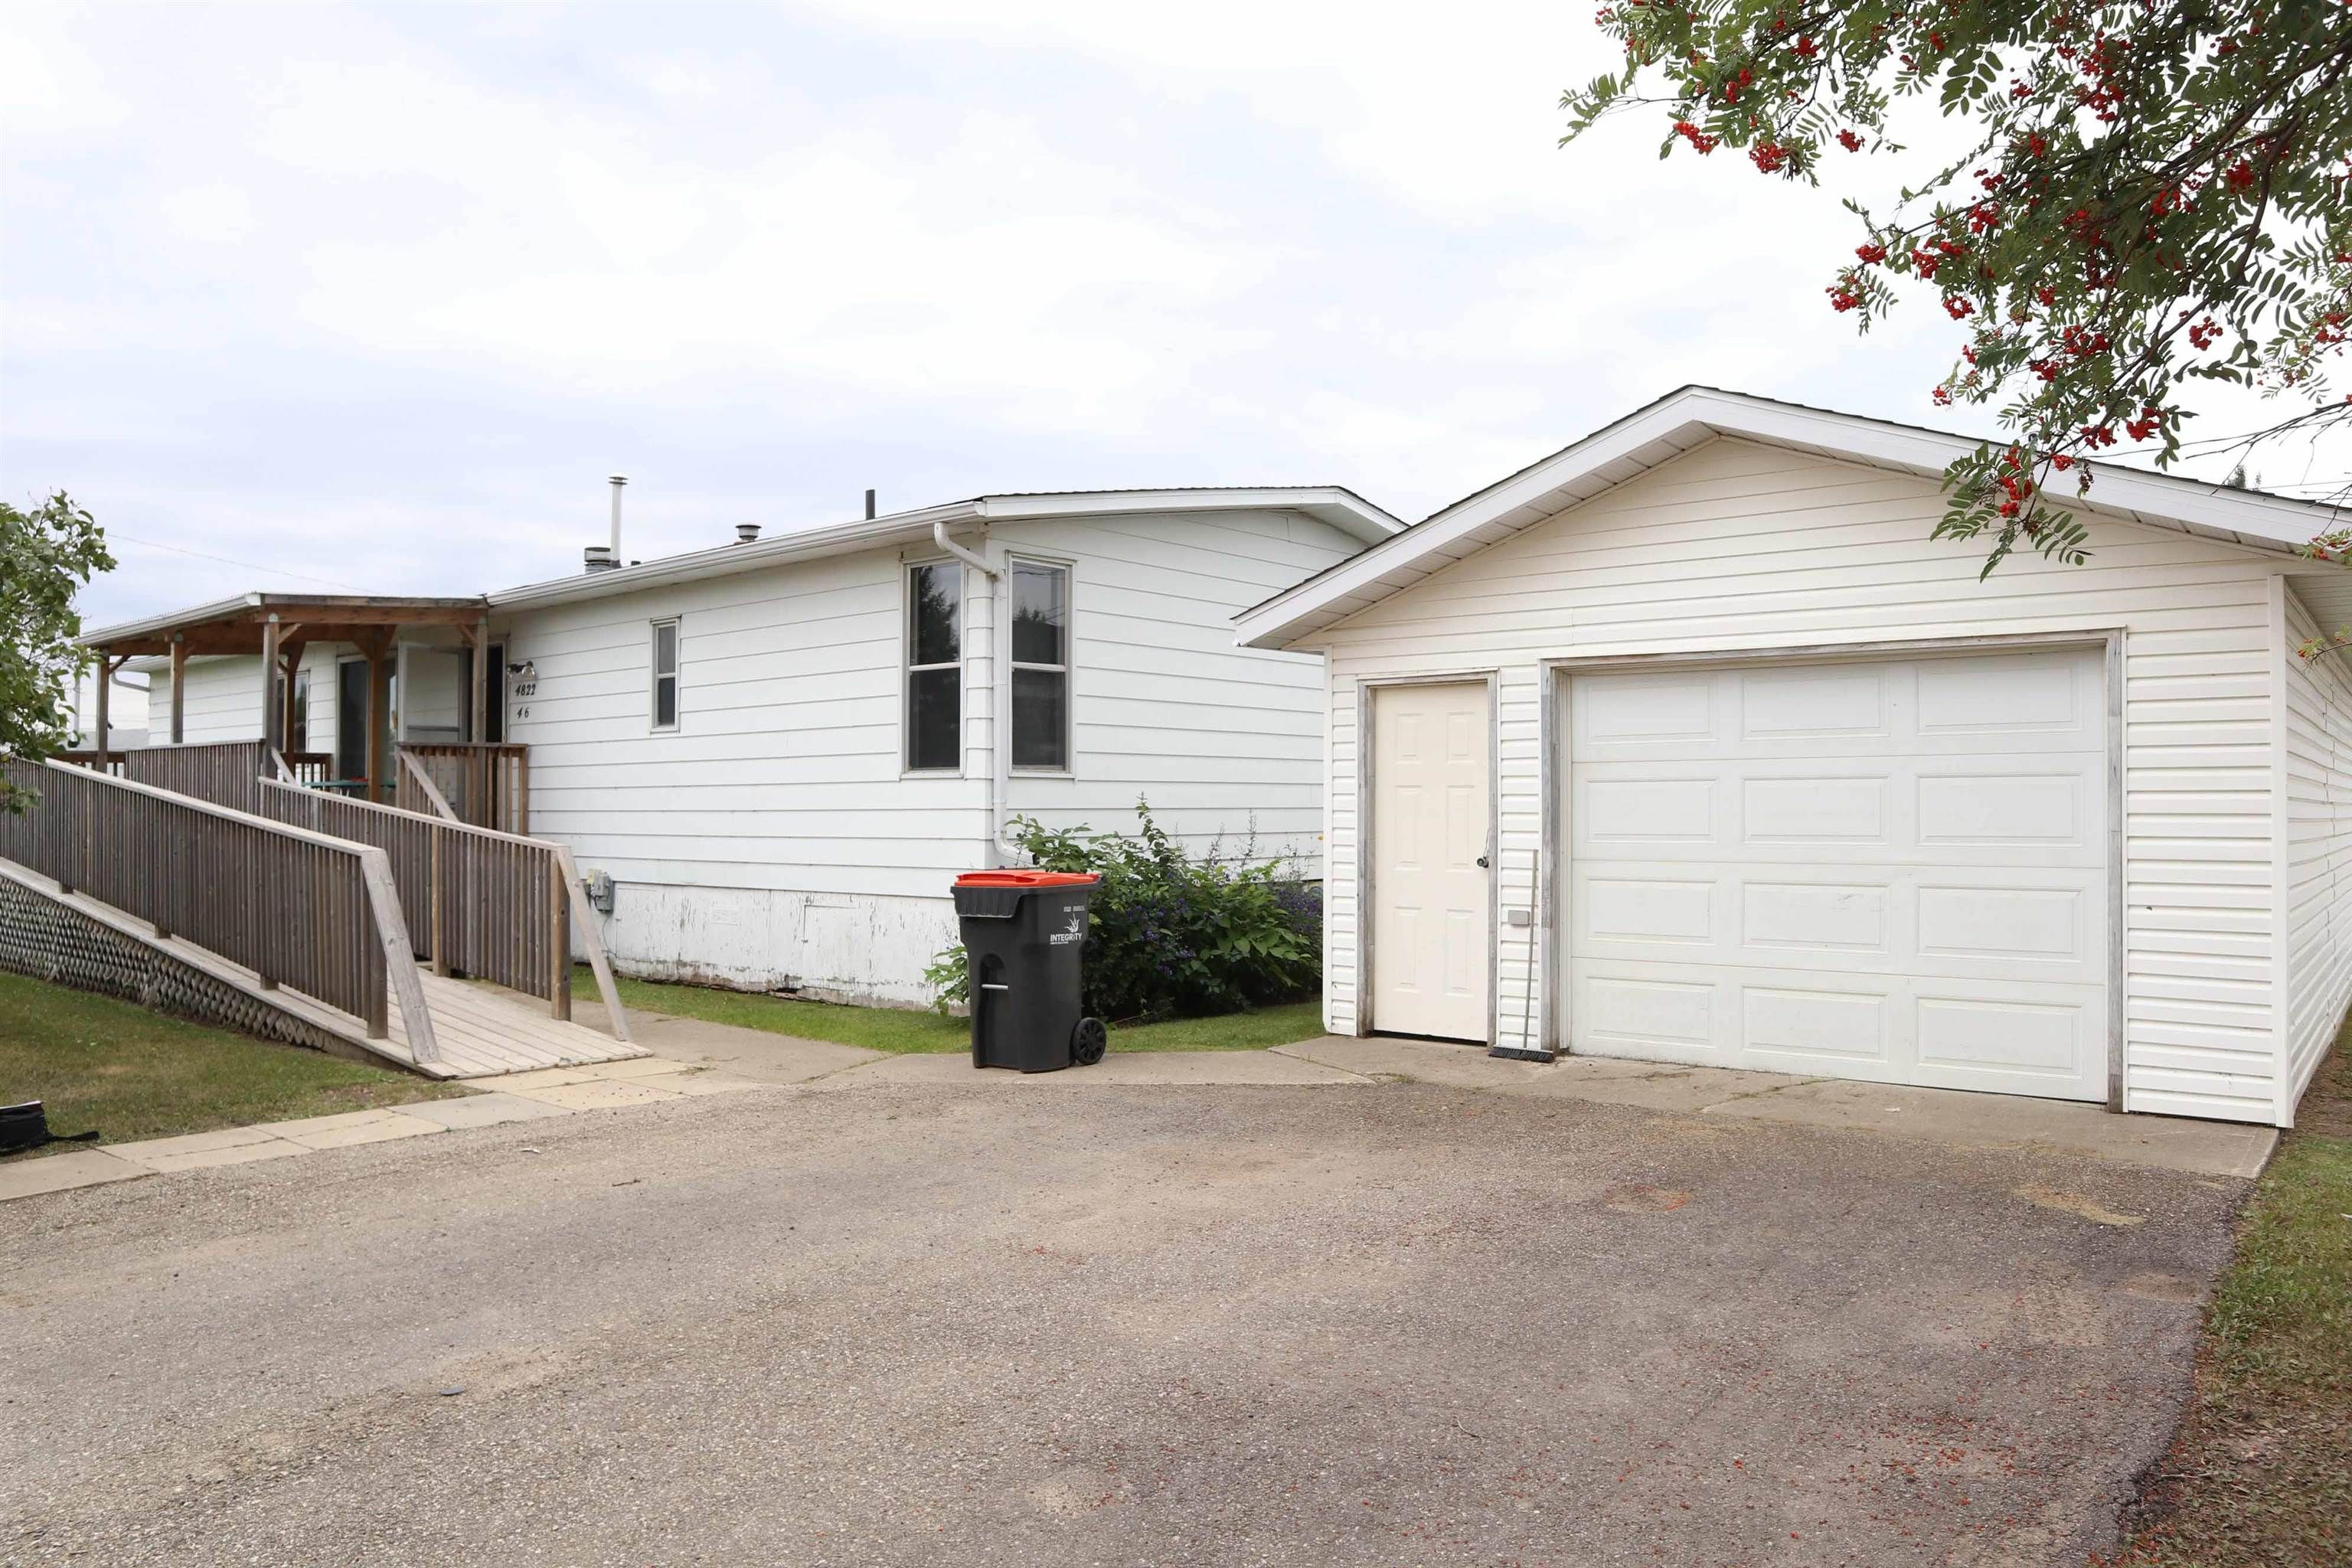 Main Photo: 4822 46 Street: Thorsby House for sale : MLS®# E4261081